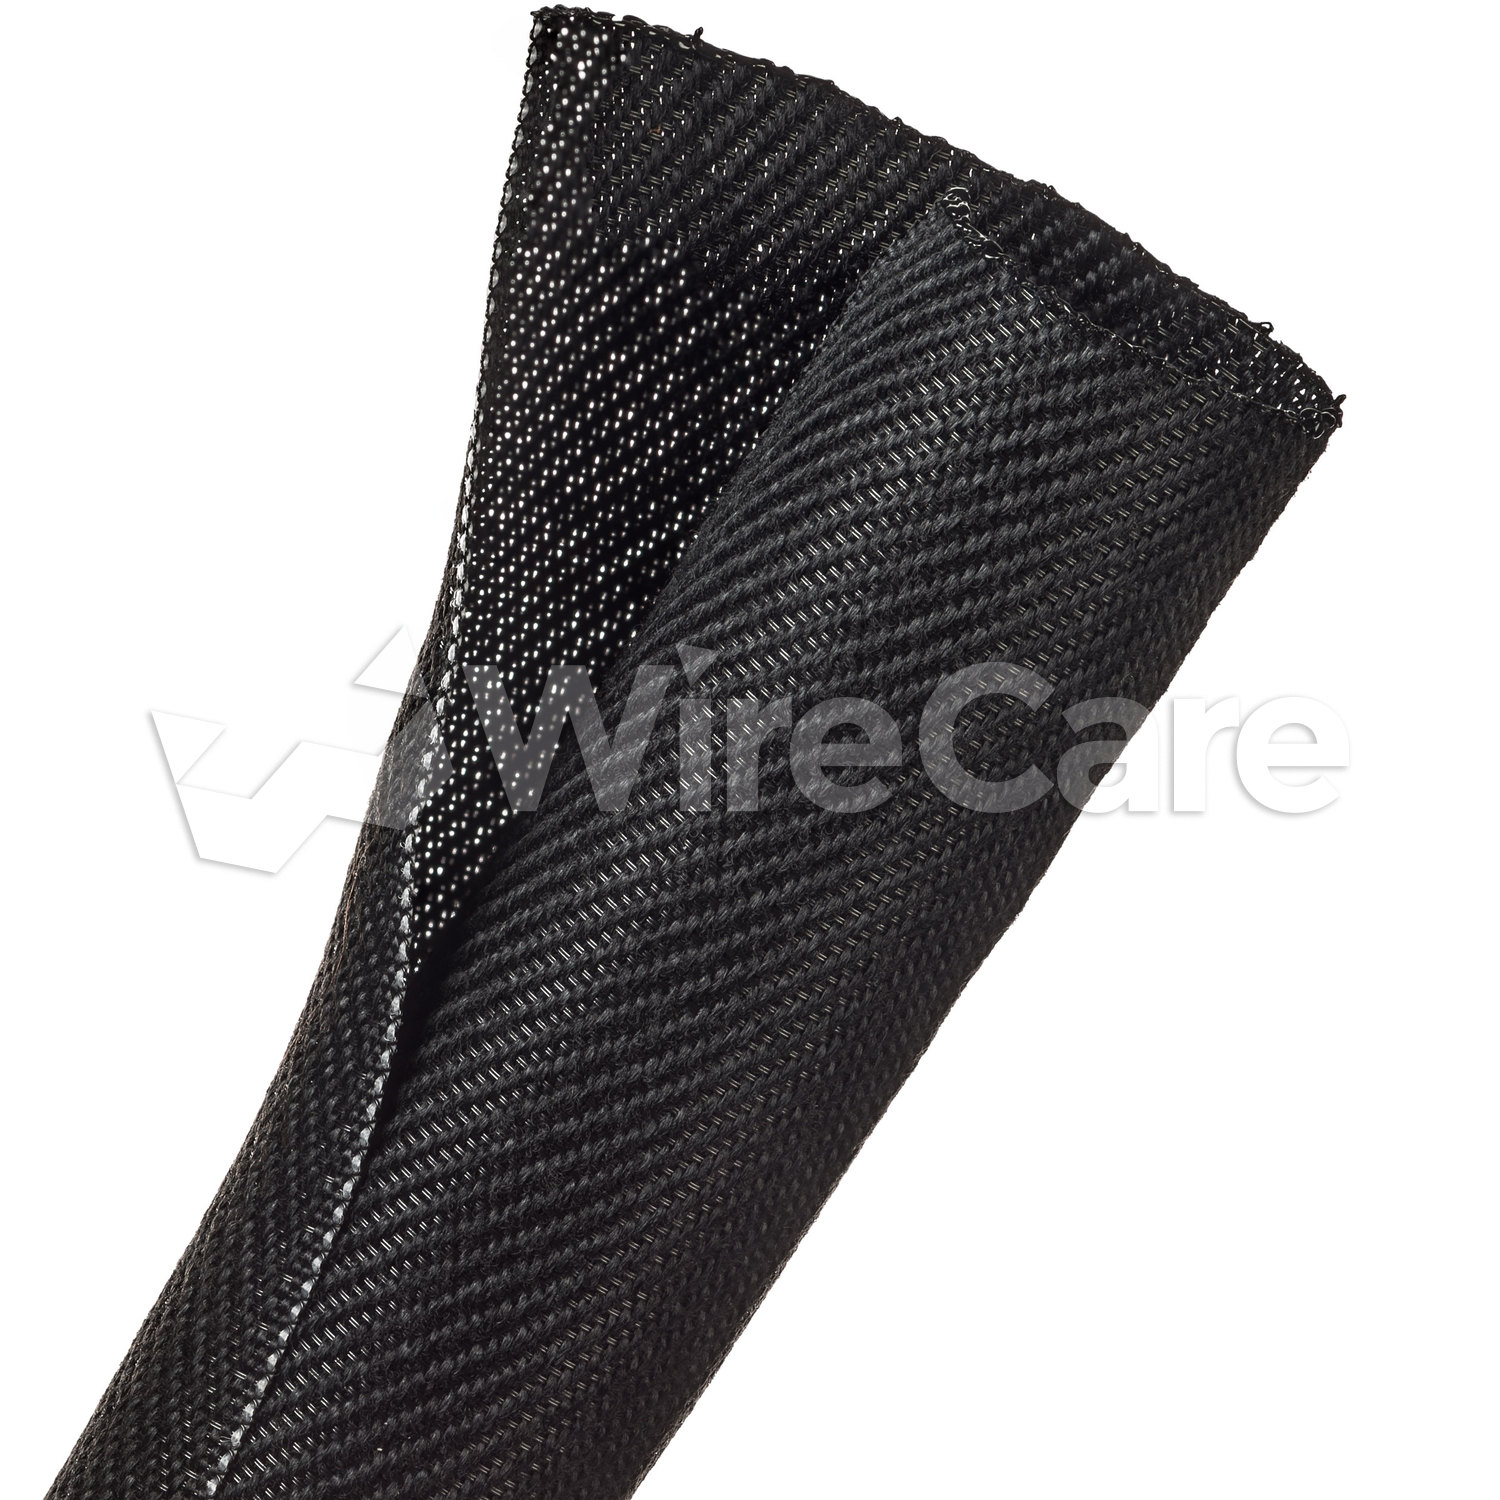 1//2 Techflex Tight weave expandable 50FT extra tight coverage and protection